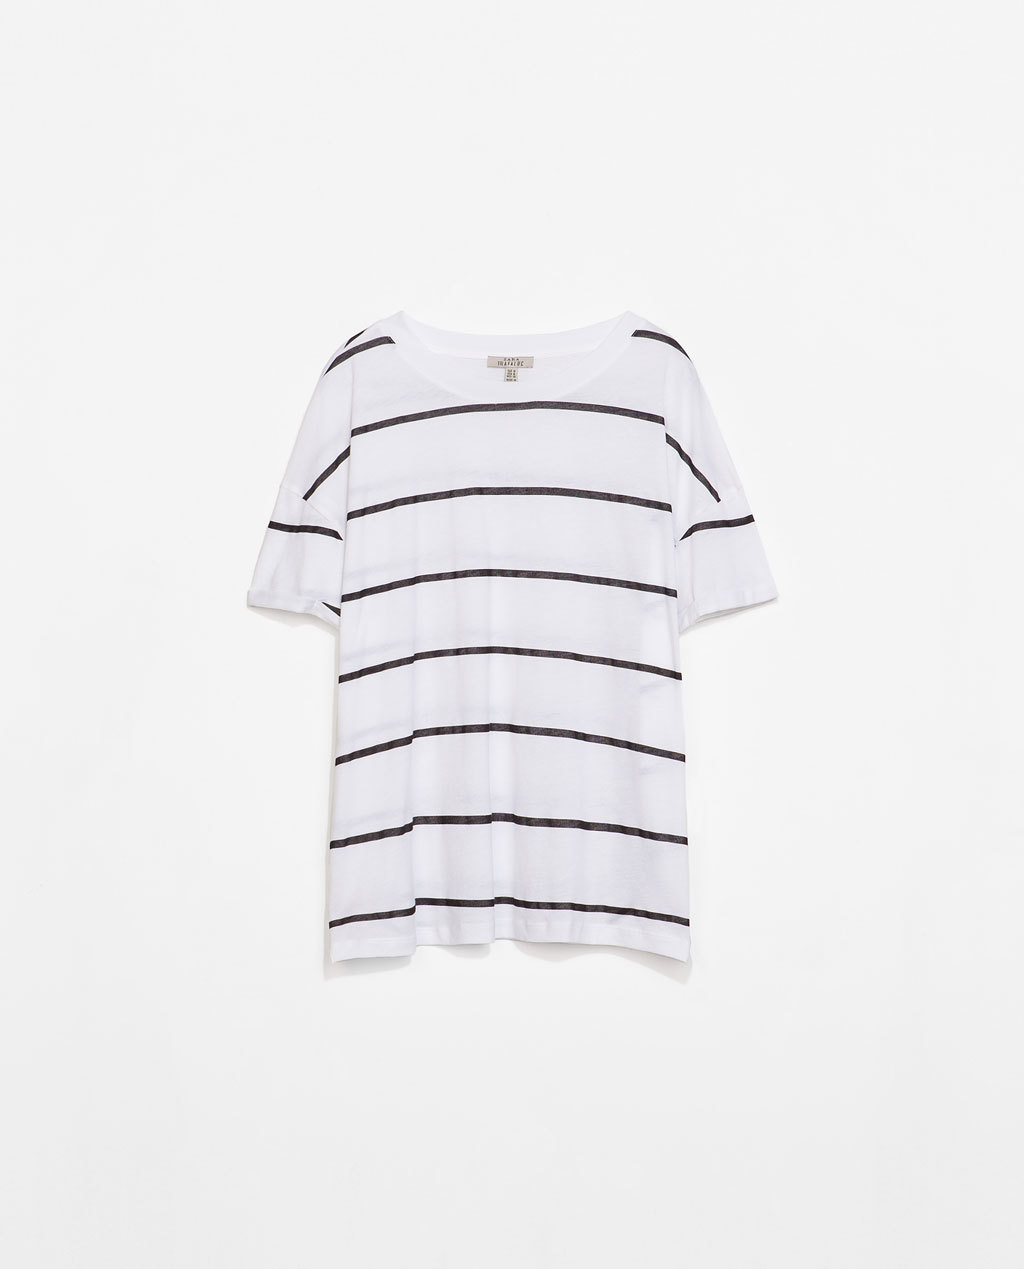 Striped T Shirt - neckline: round neck; pattern: horizontal stripes; style: t-shirt; predominant colour: white; secondary colour: navy; occasions: casual; length: standard; fibres: cotton - 100%; fit: loose; sleeve length: short sleeve; sleeve style: standard; pattern type: fabric; texture group: jersey - stretchy/drapey; season: s/s 2014; trends: monochrome